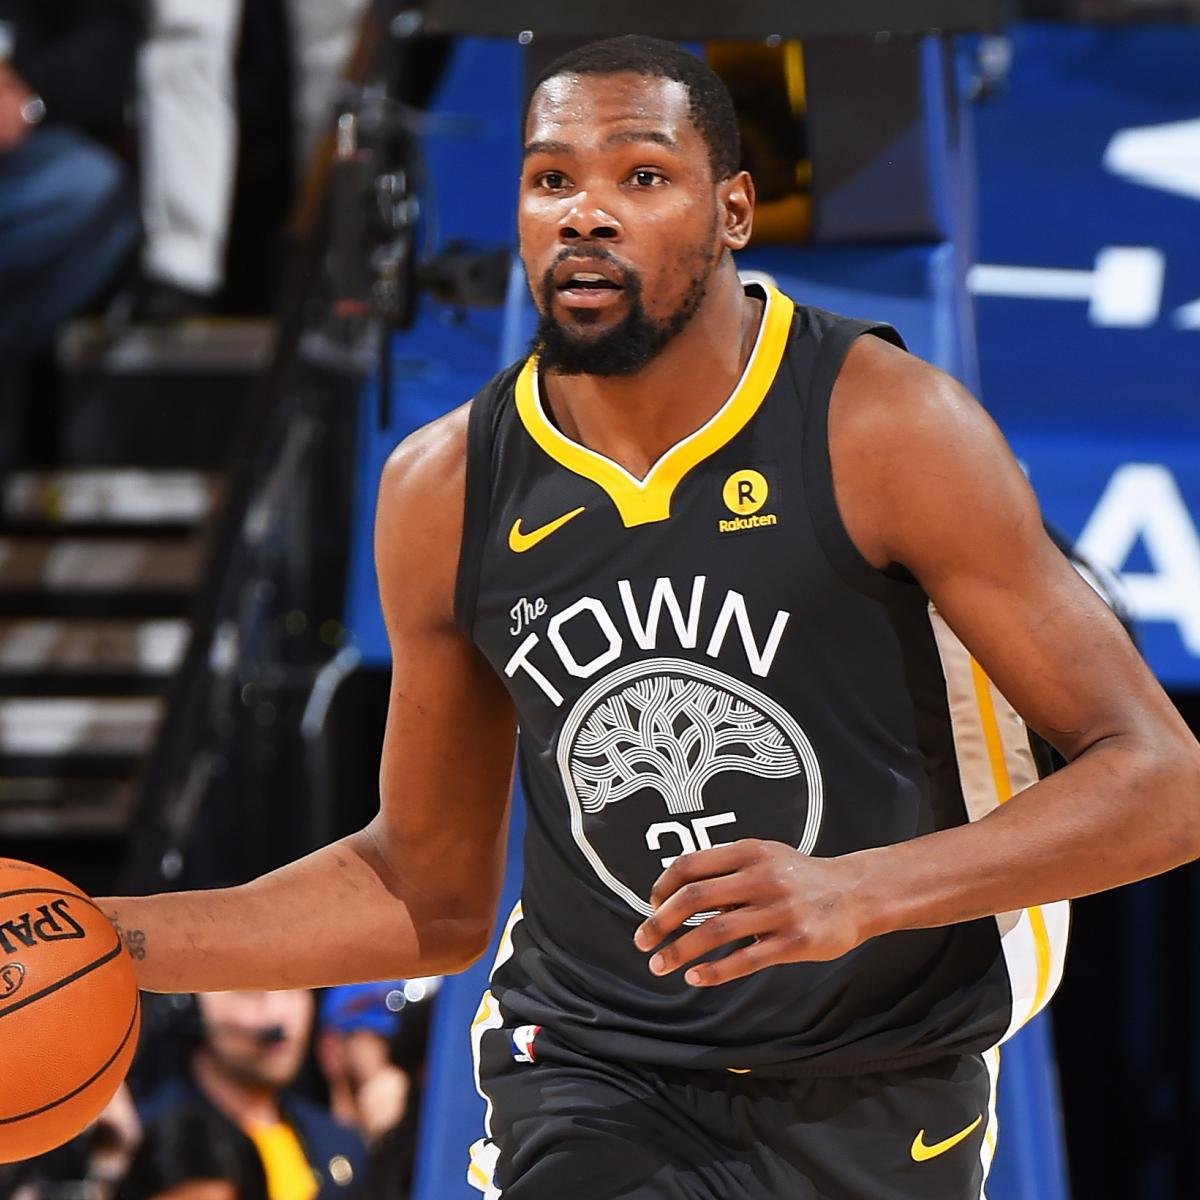 Warriors And Rockets Game Live Stream: NBA Playoff Bracket 2018: TV Schedule And Live Stream For